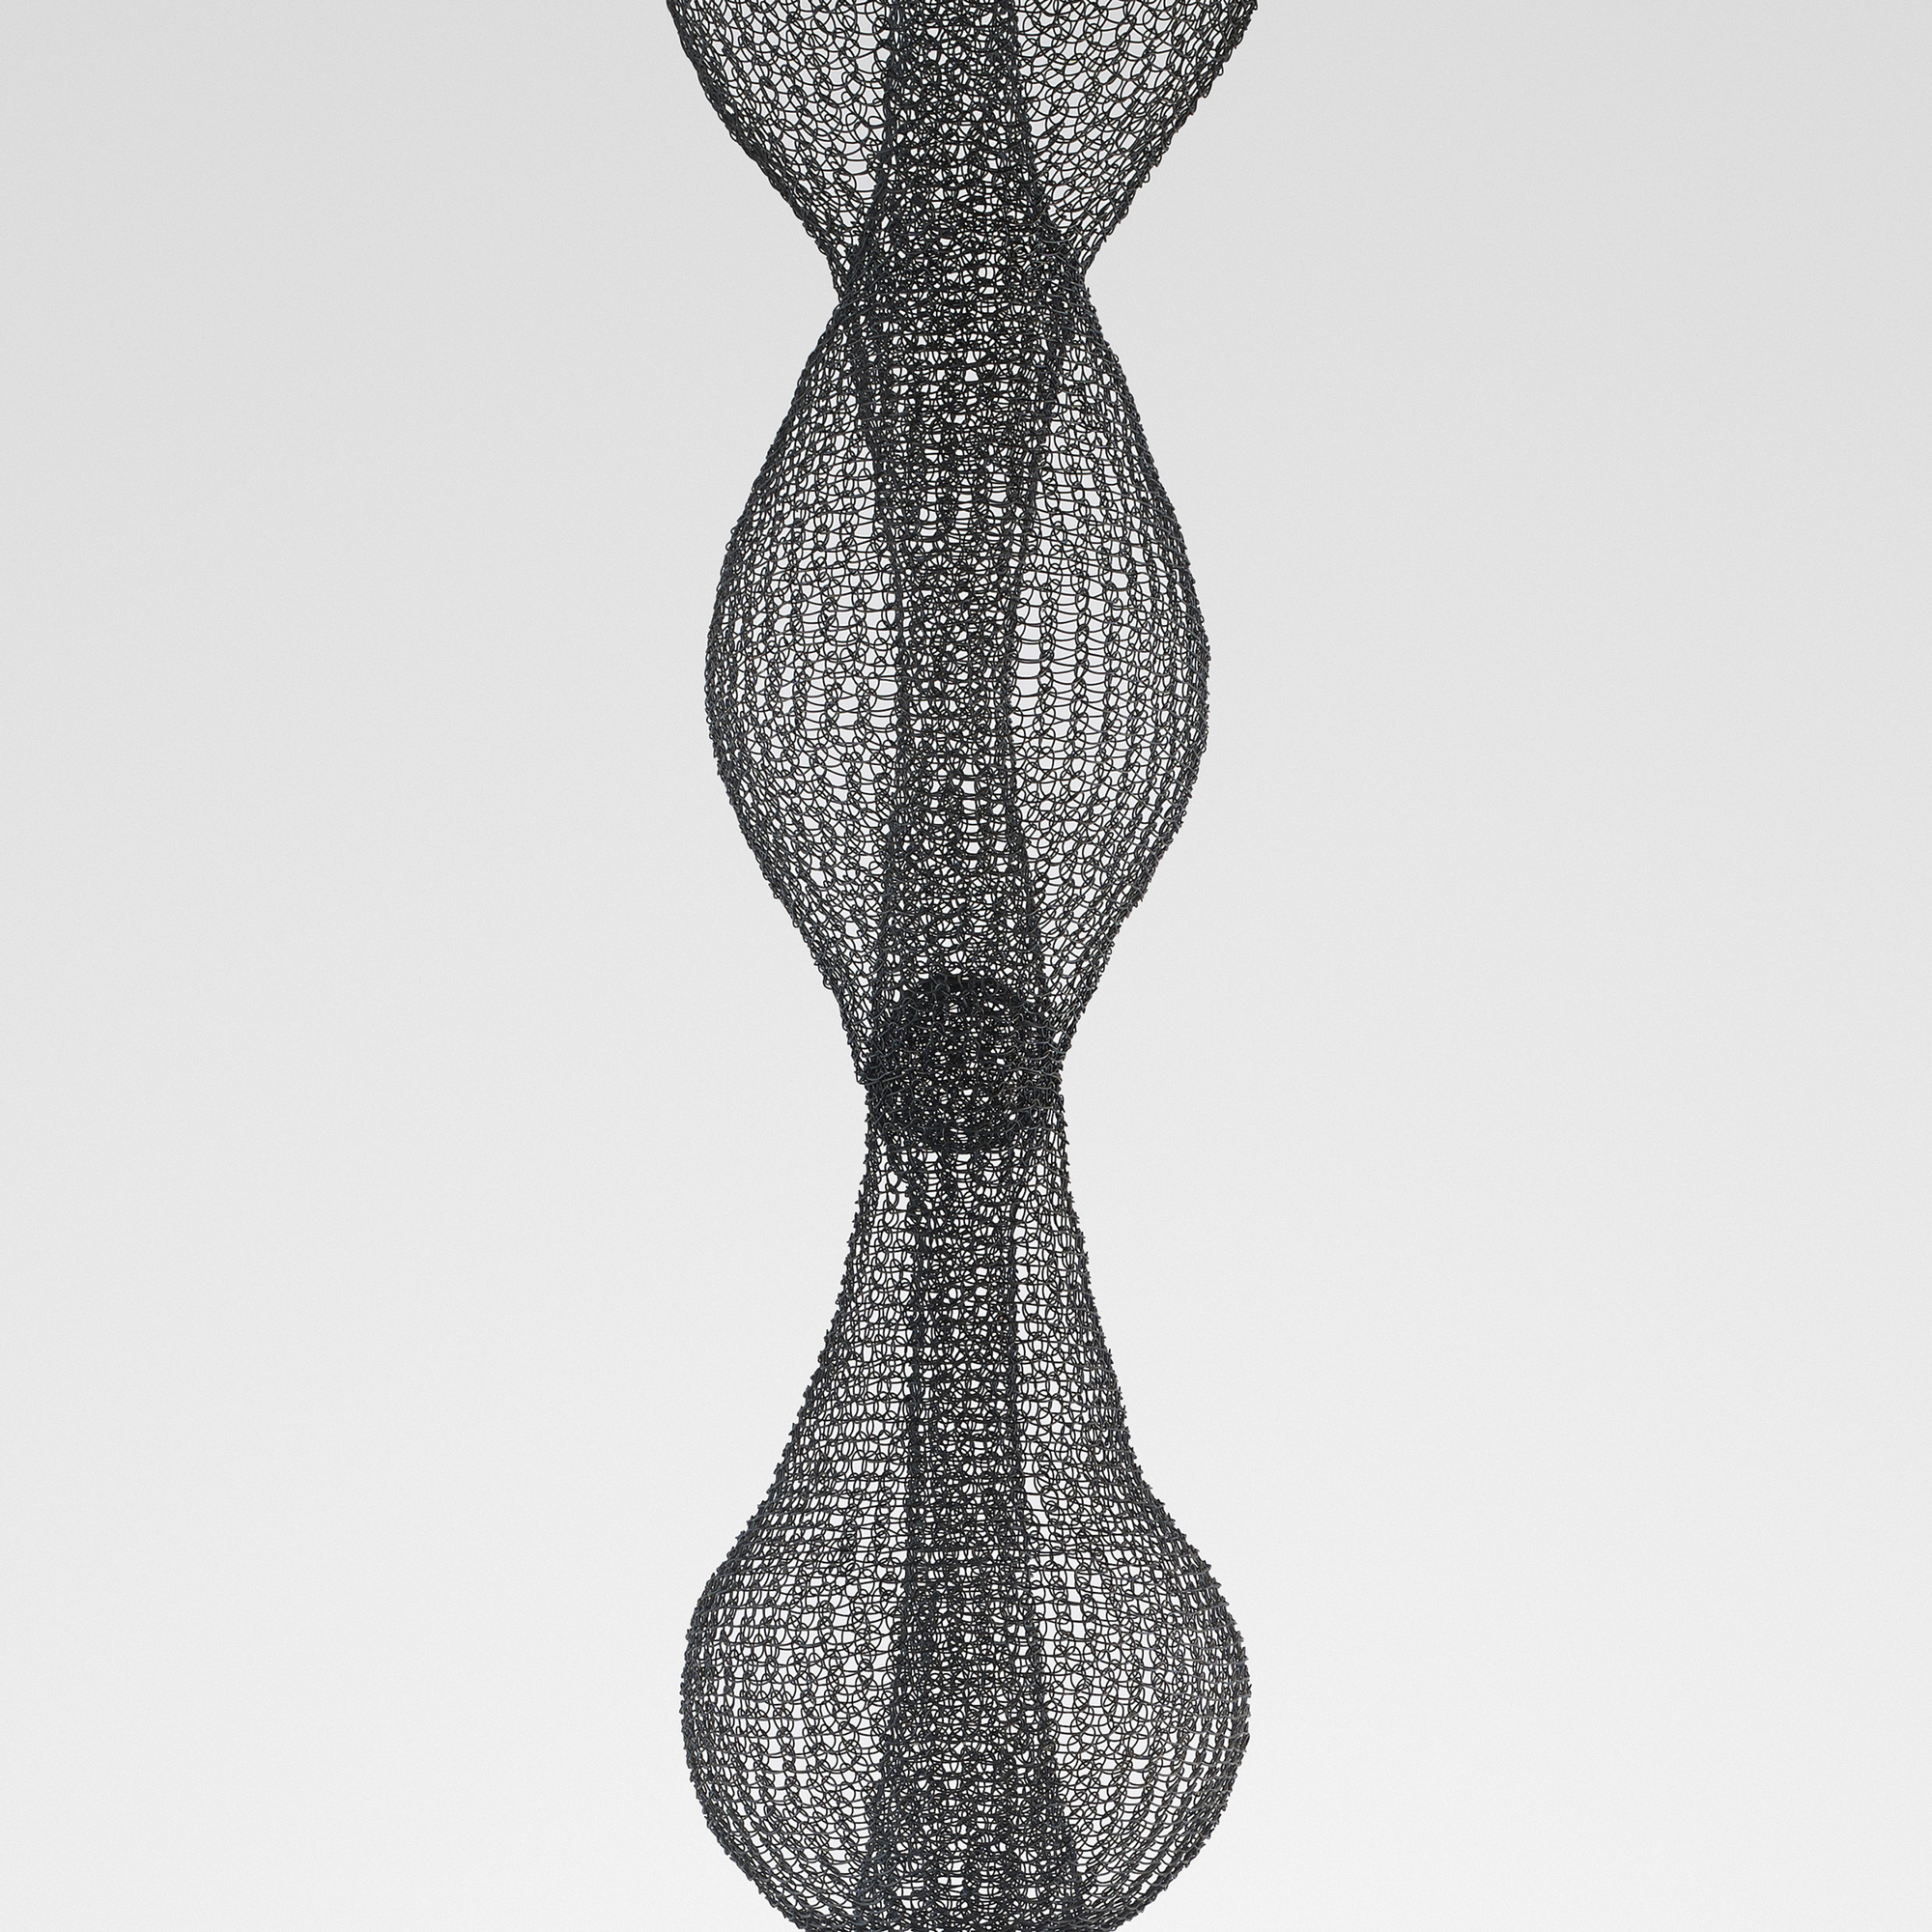 114: RUTH ASAWA, Untitled (S.386, Hanging, Five-Lobed, Multi-Layered ...